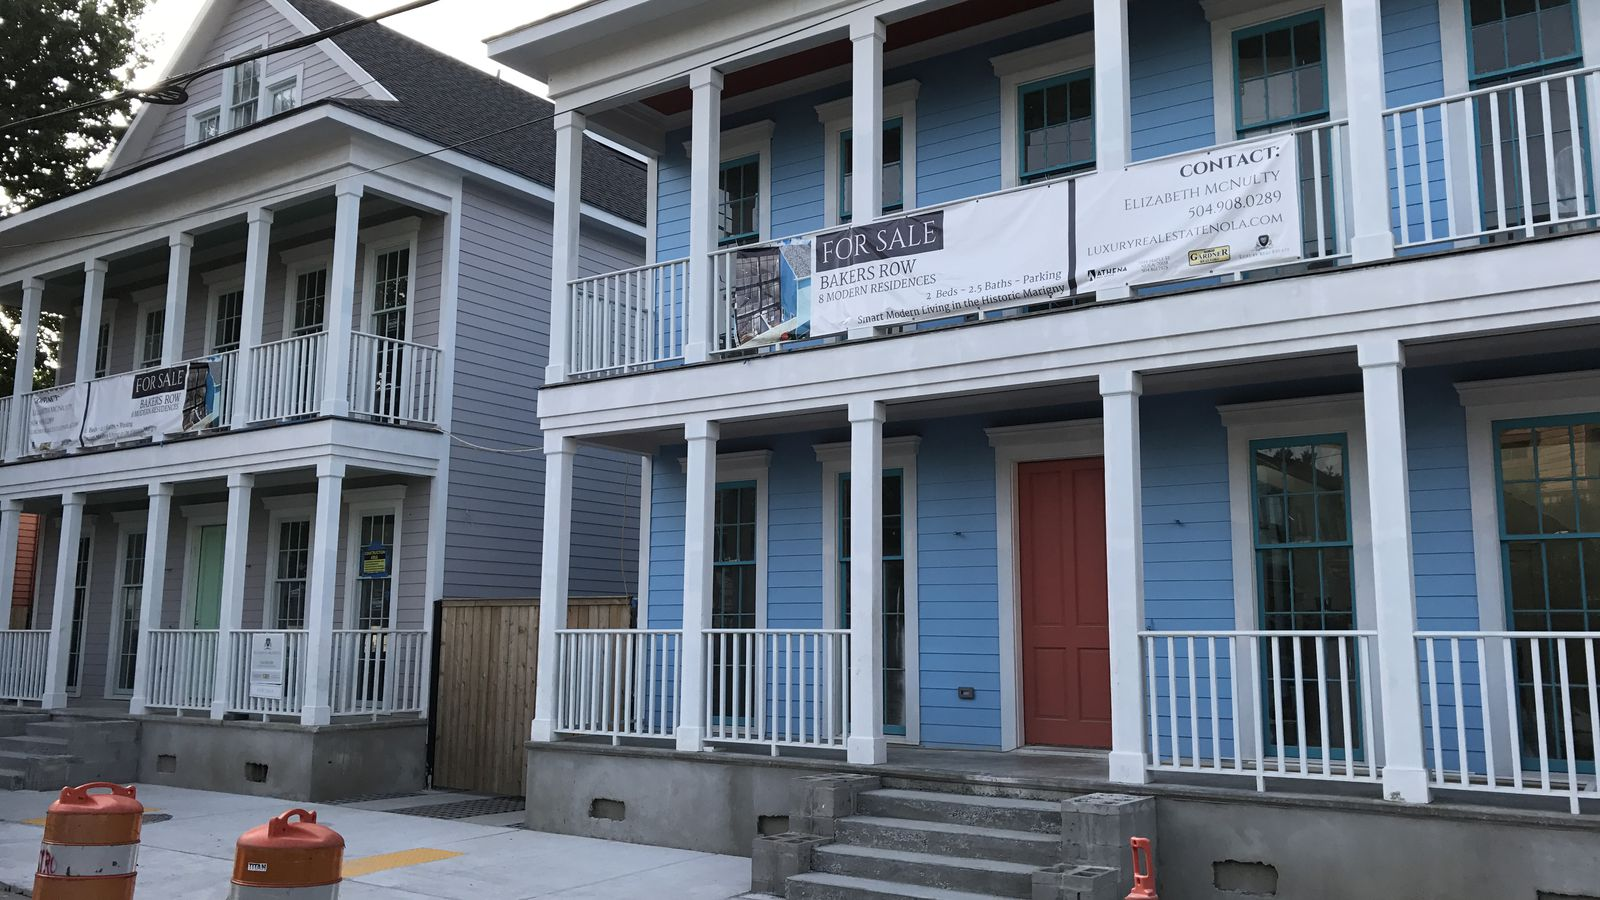 baker s row a first look at the new marigny condos curbed new orleans. Black Bedroom Furniture Sets. Home Design Ideas